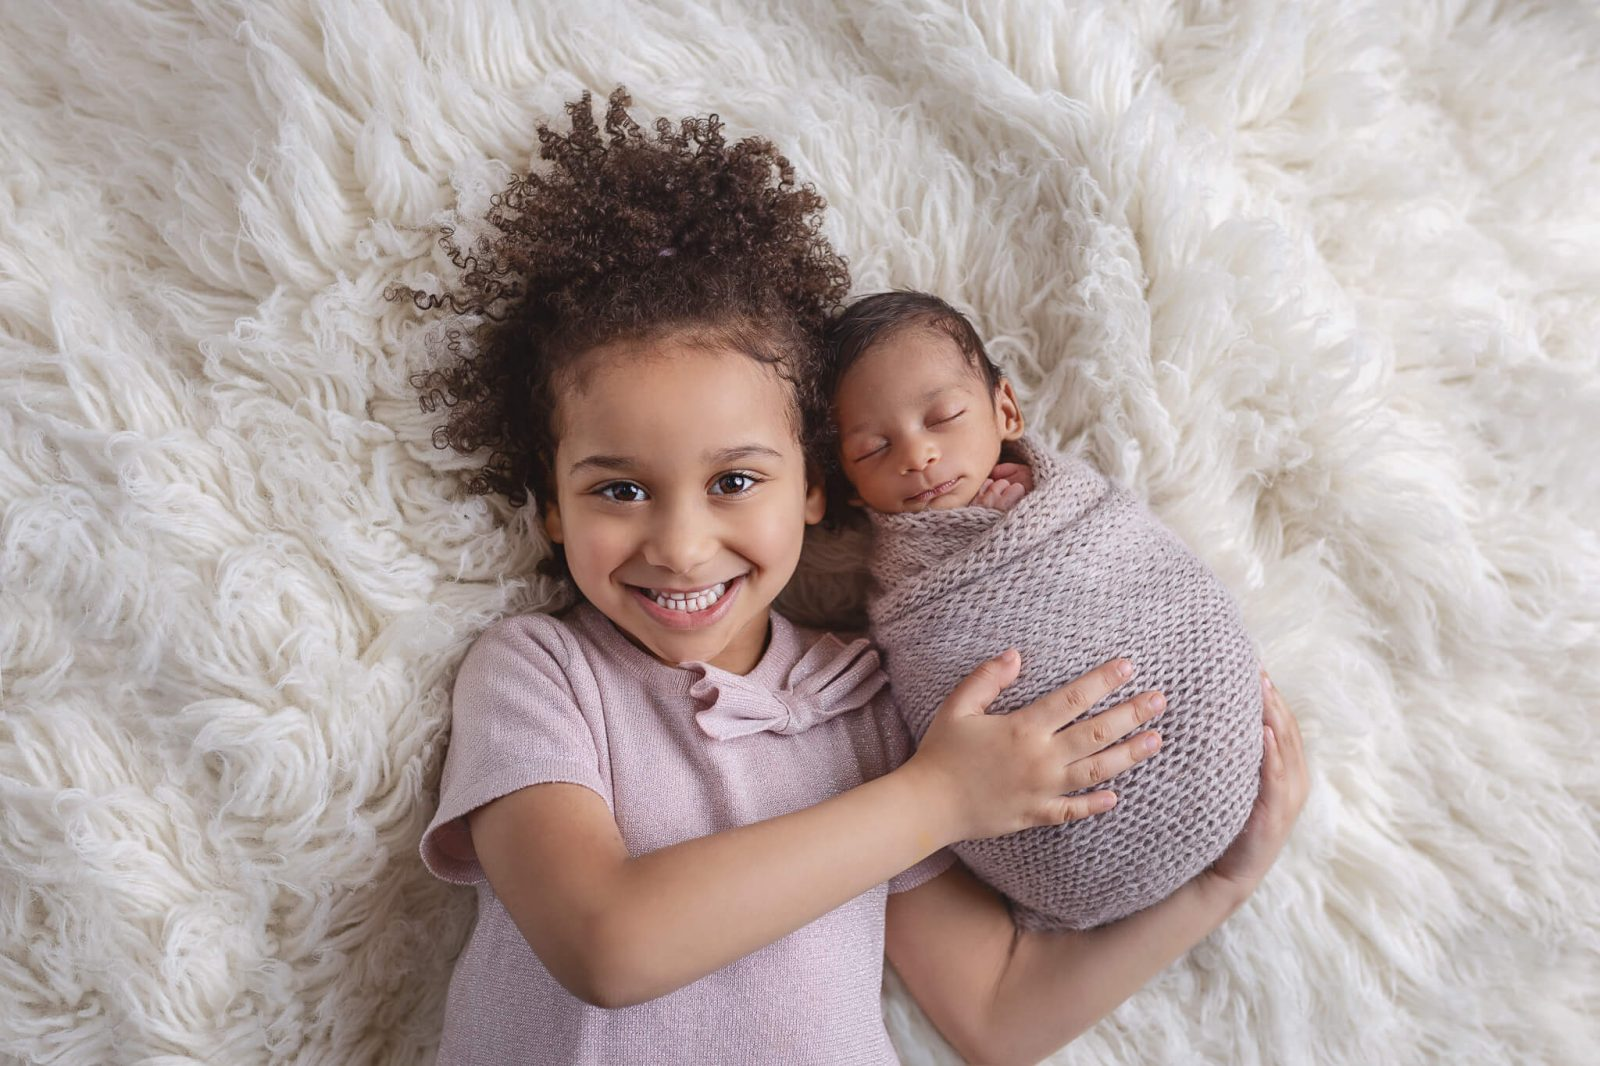 newborn with sibling on a bed